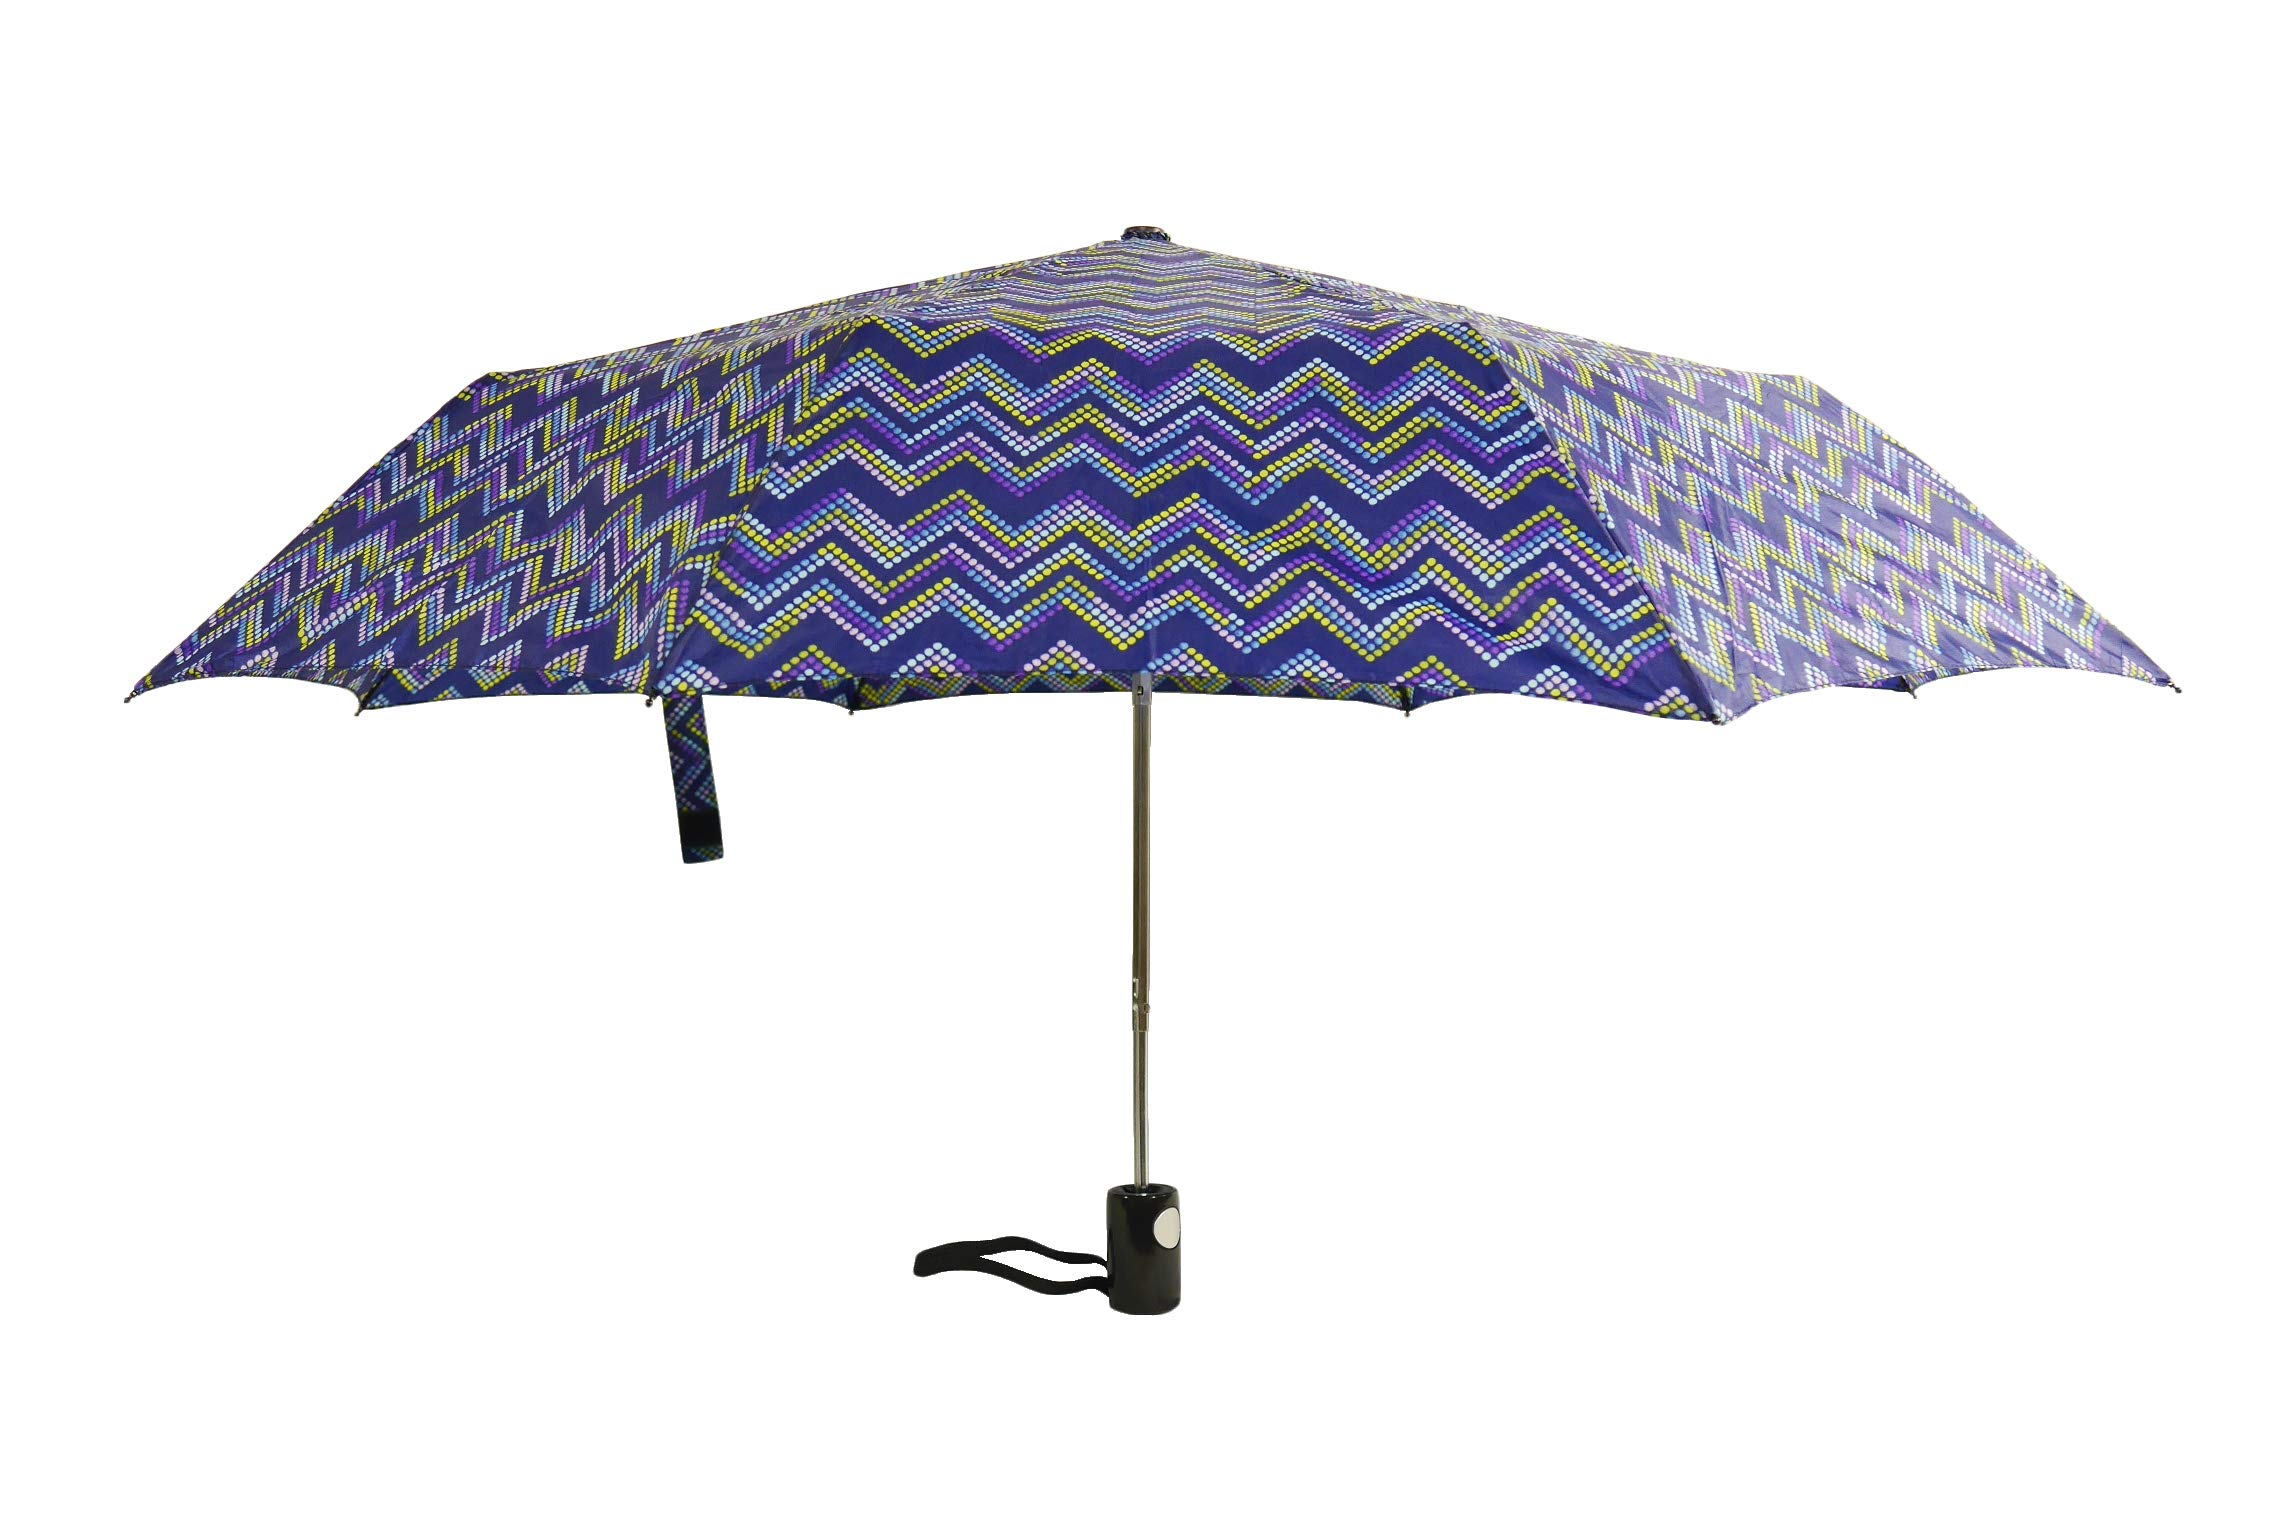 KUD 42 inch Compact Lightweight Auto-open umbrella (Multicolored D) by Keep You Dry (Image #2)